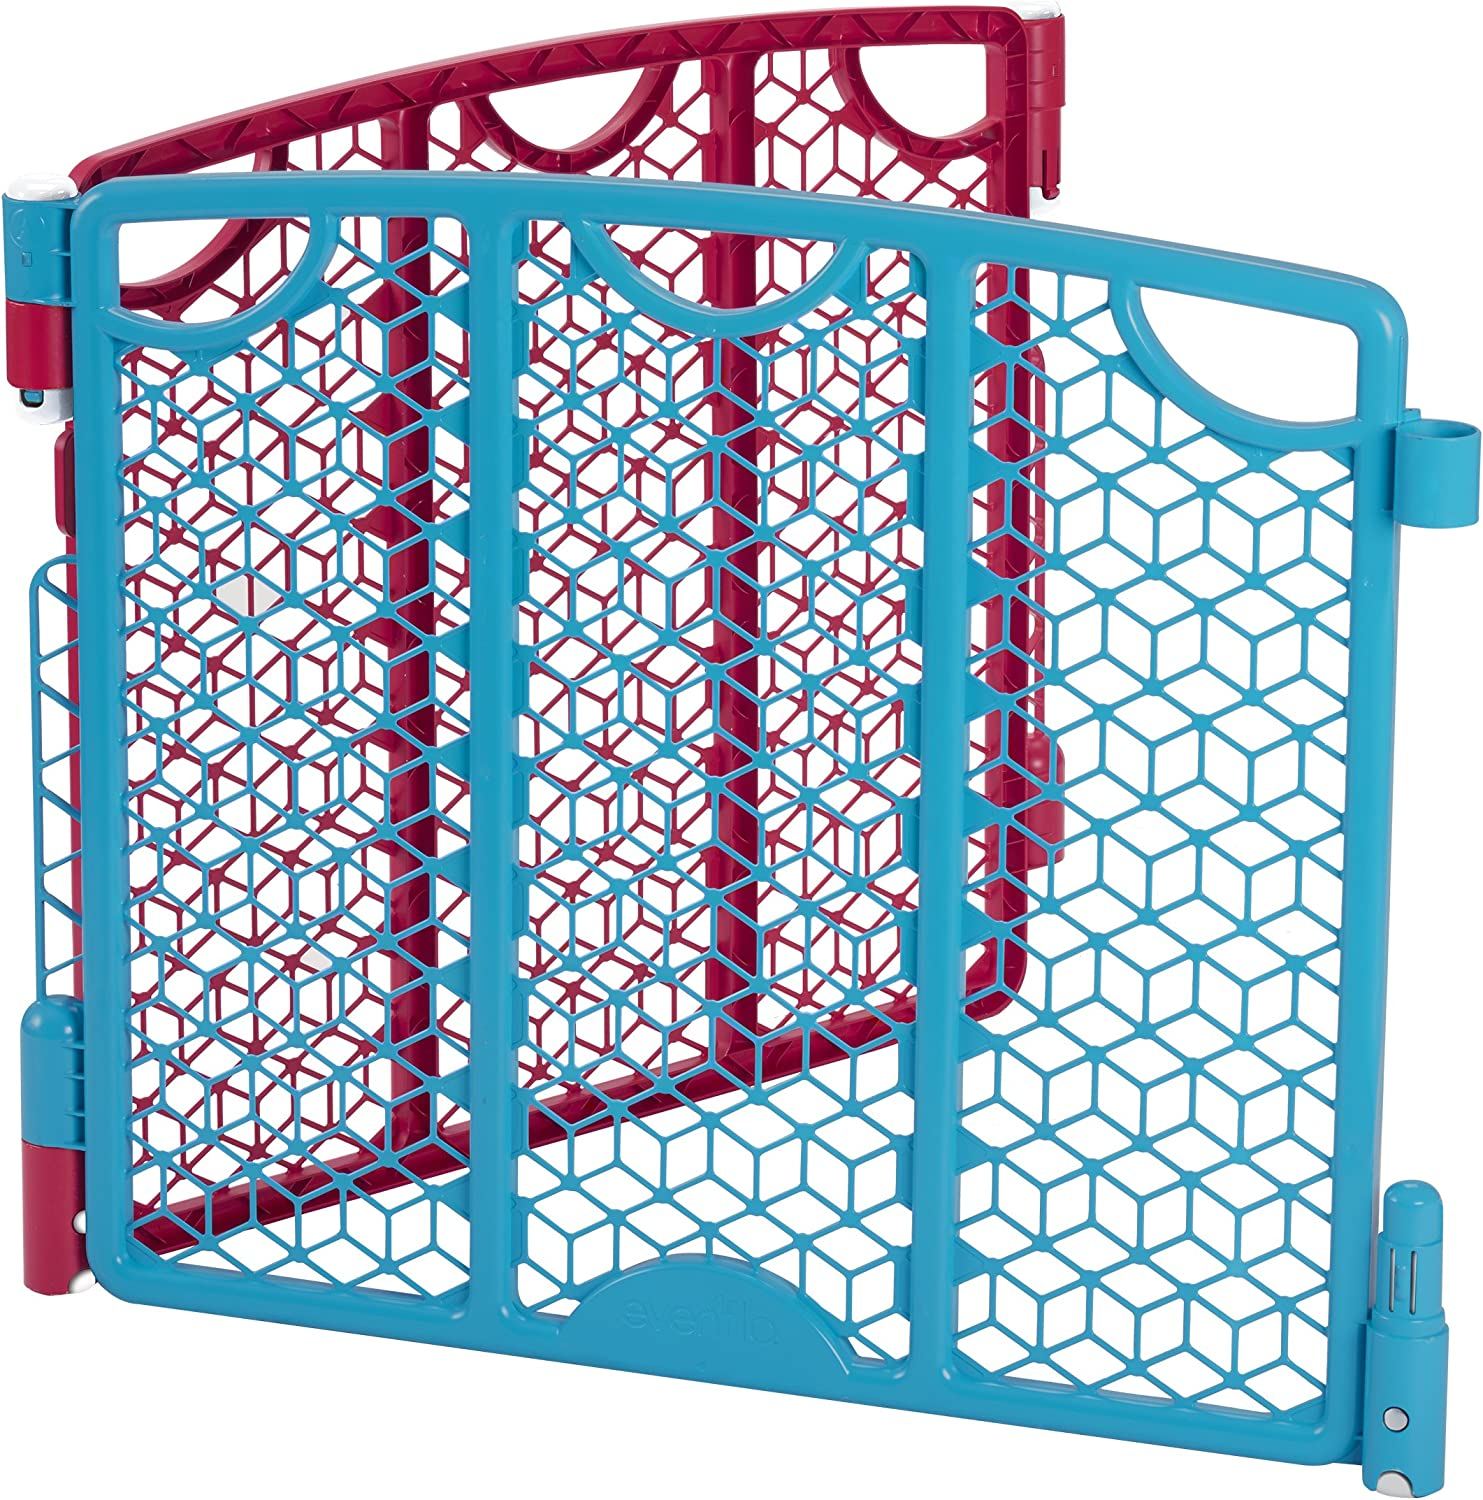 Cream Evenflo Versatile Play Space 2-Panel Extension